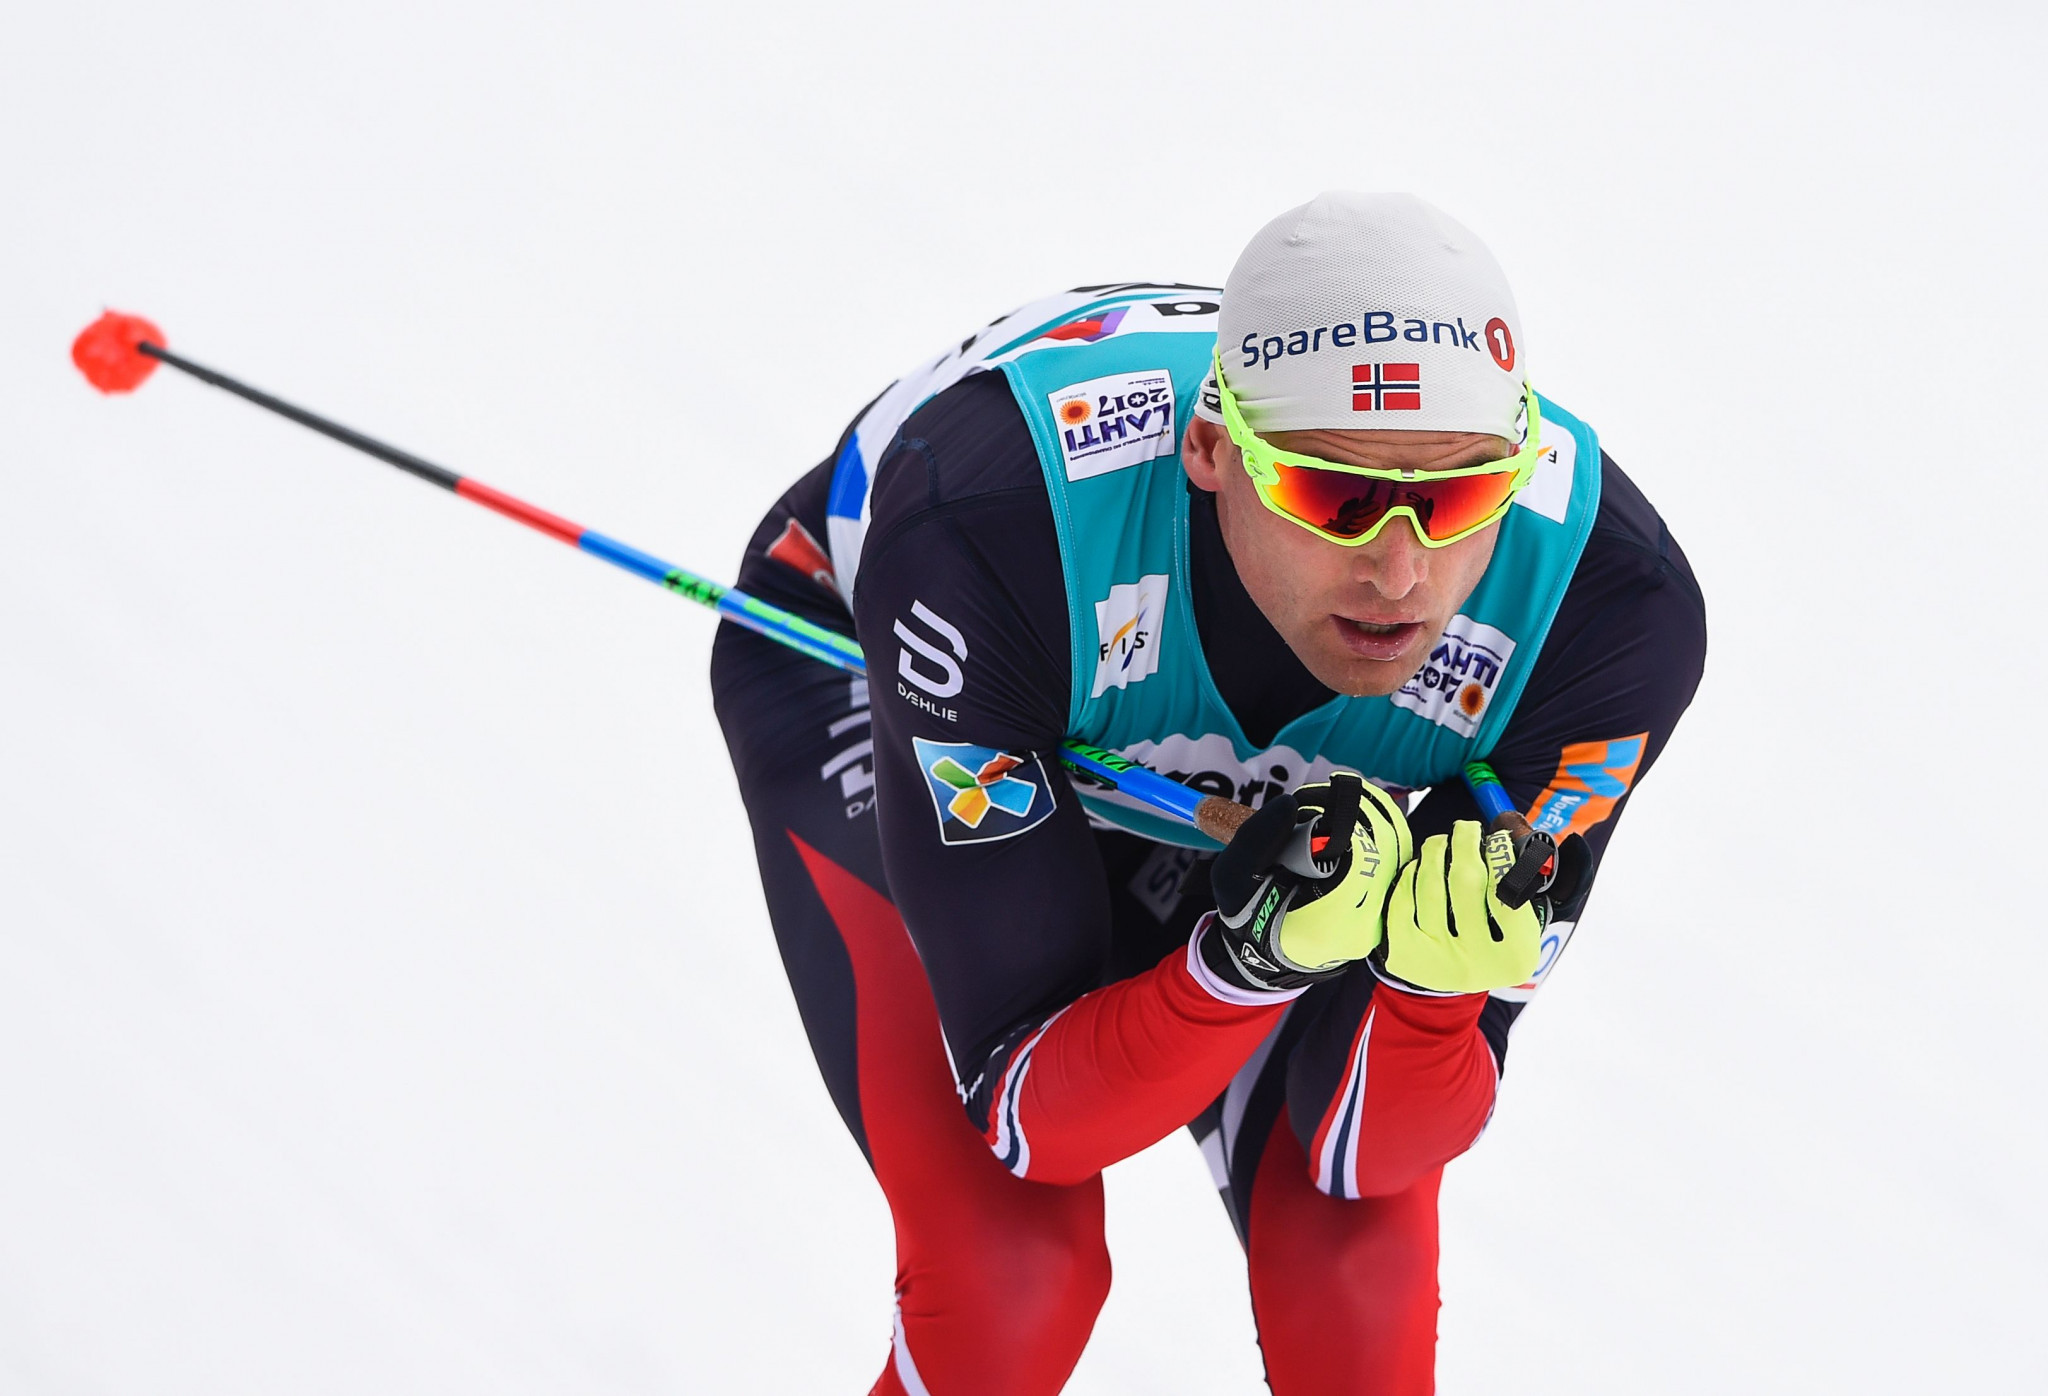 Three-time World Championship medallist Dyrhaug retires from cross-country skiing